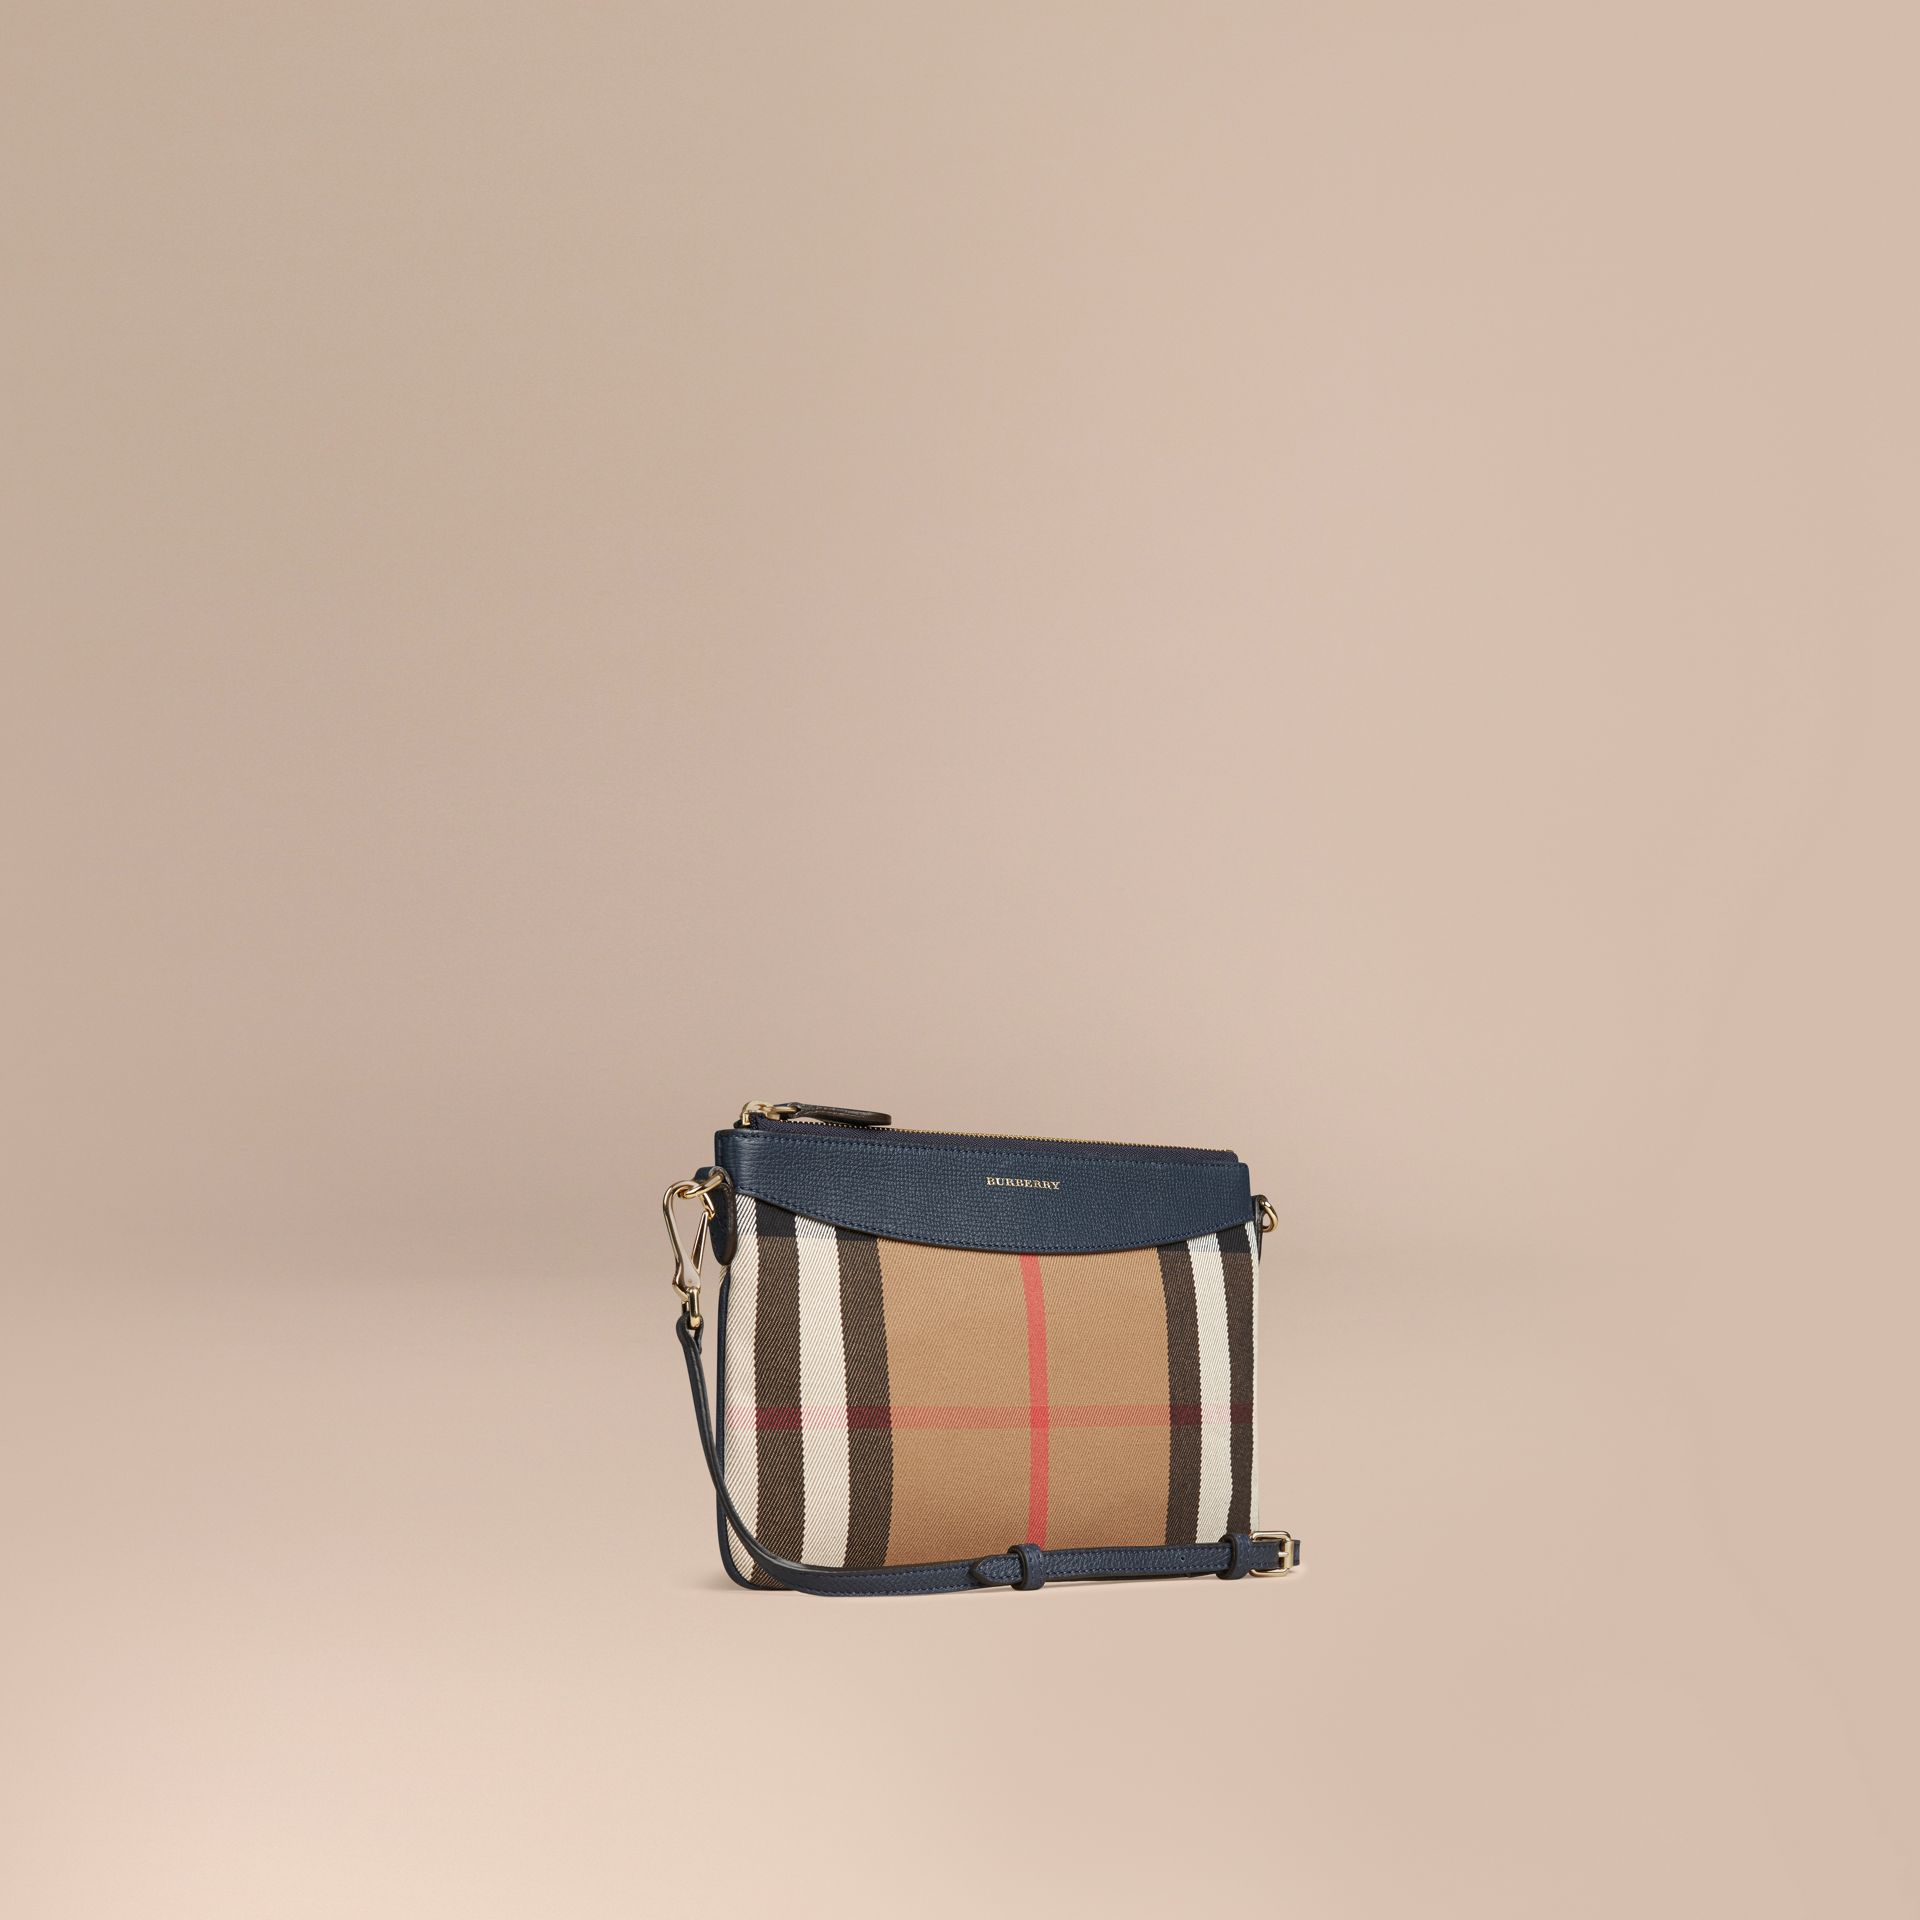 House Check and Leather Clutch Bag in Ink Blue - Women | Burberry - gallery image 1